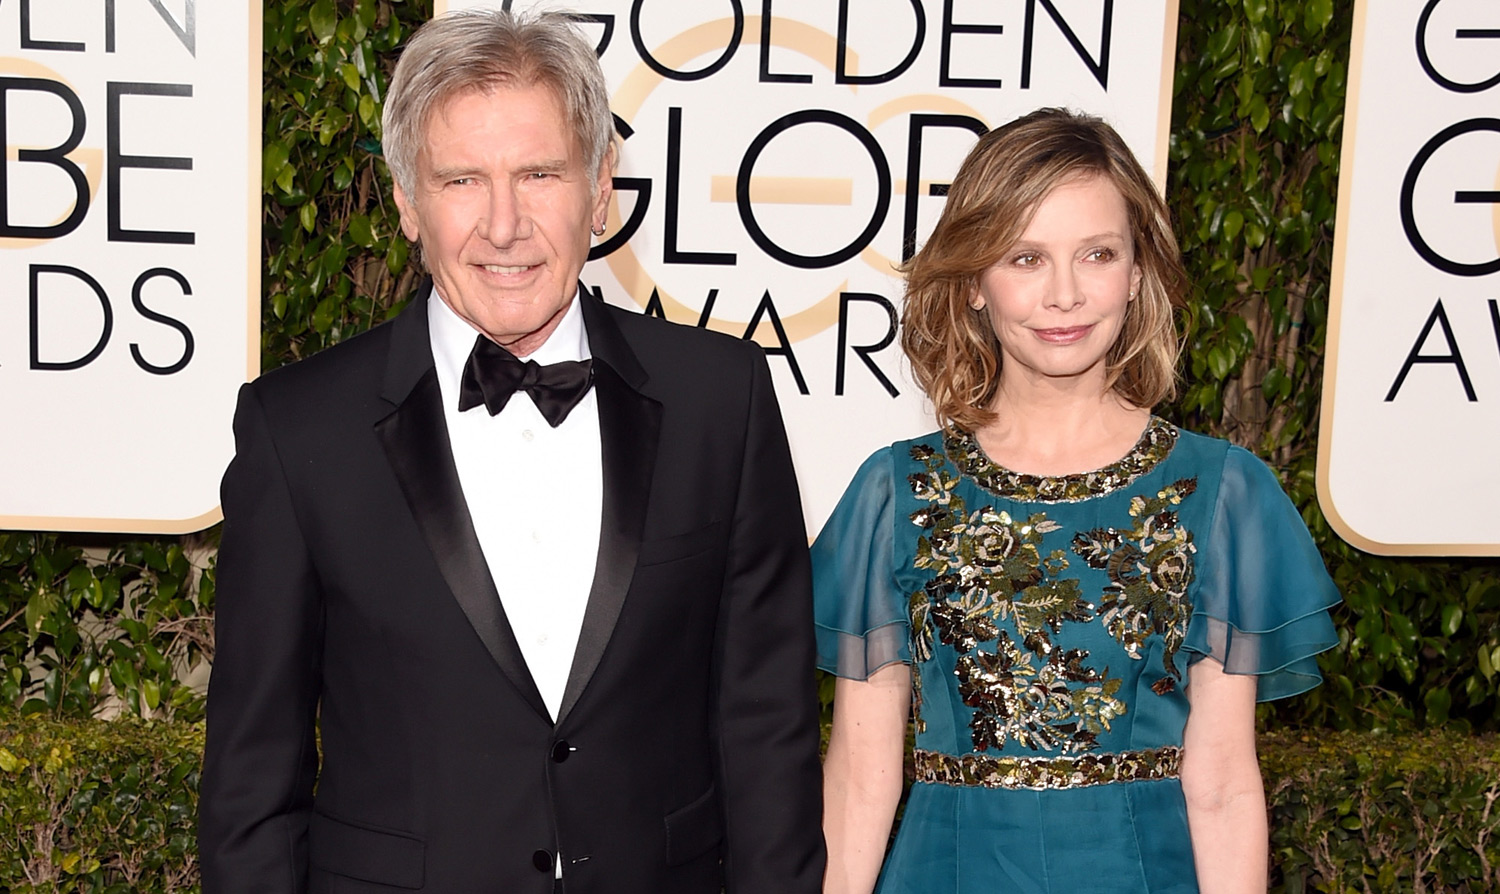 Harrison Ford Amp Calista Flockhart Couple Up At The Golden